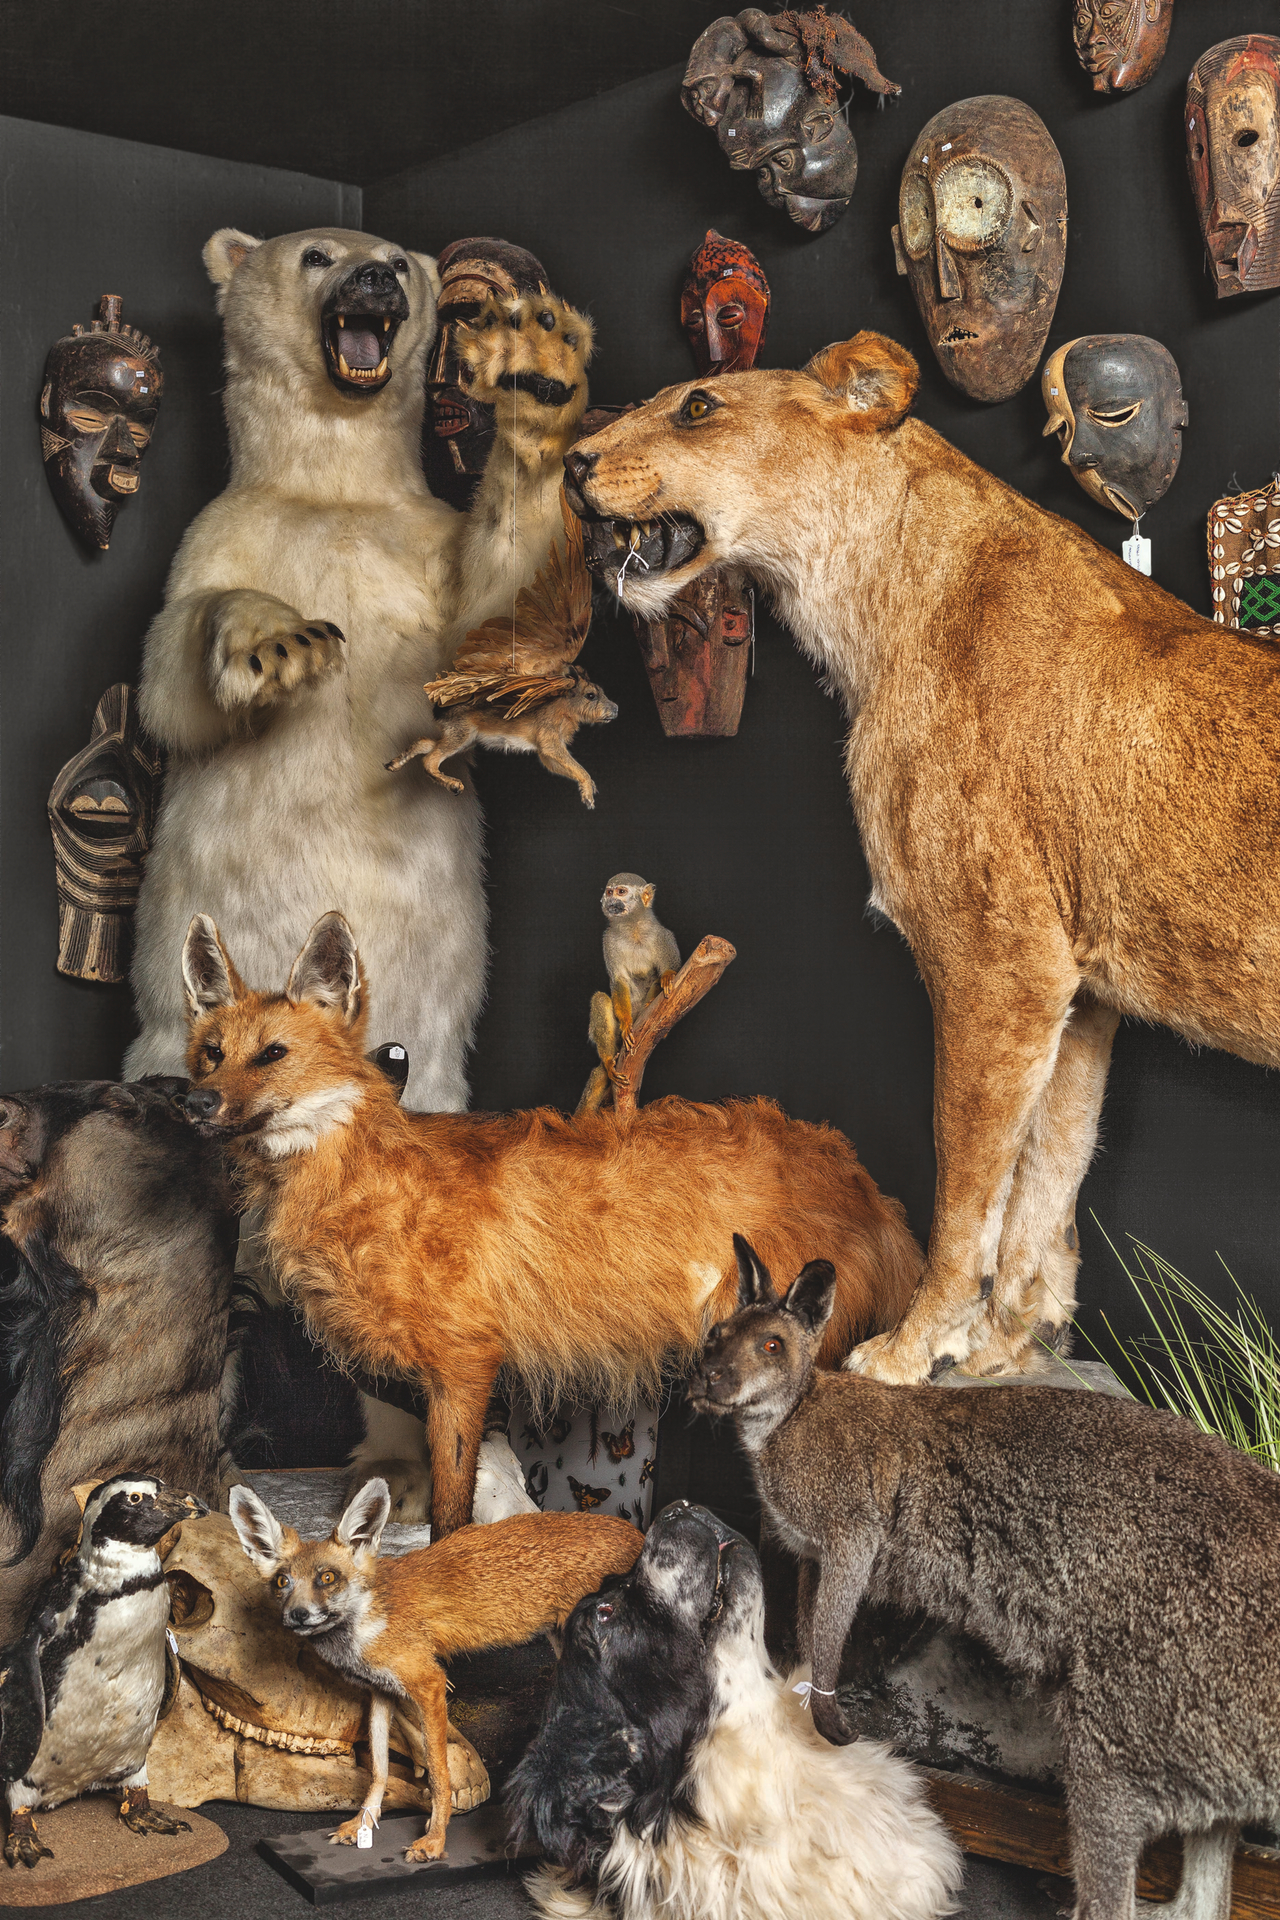 Display of taxidermy (photograph by Oskar Proctor)